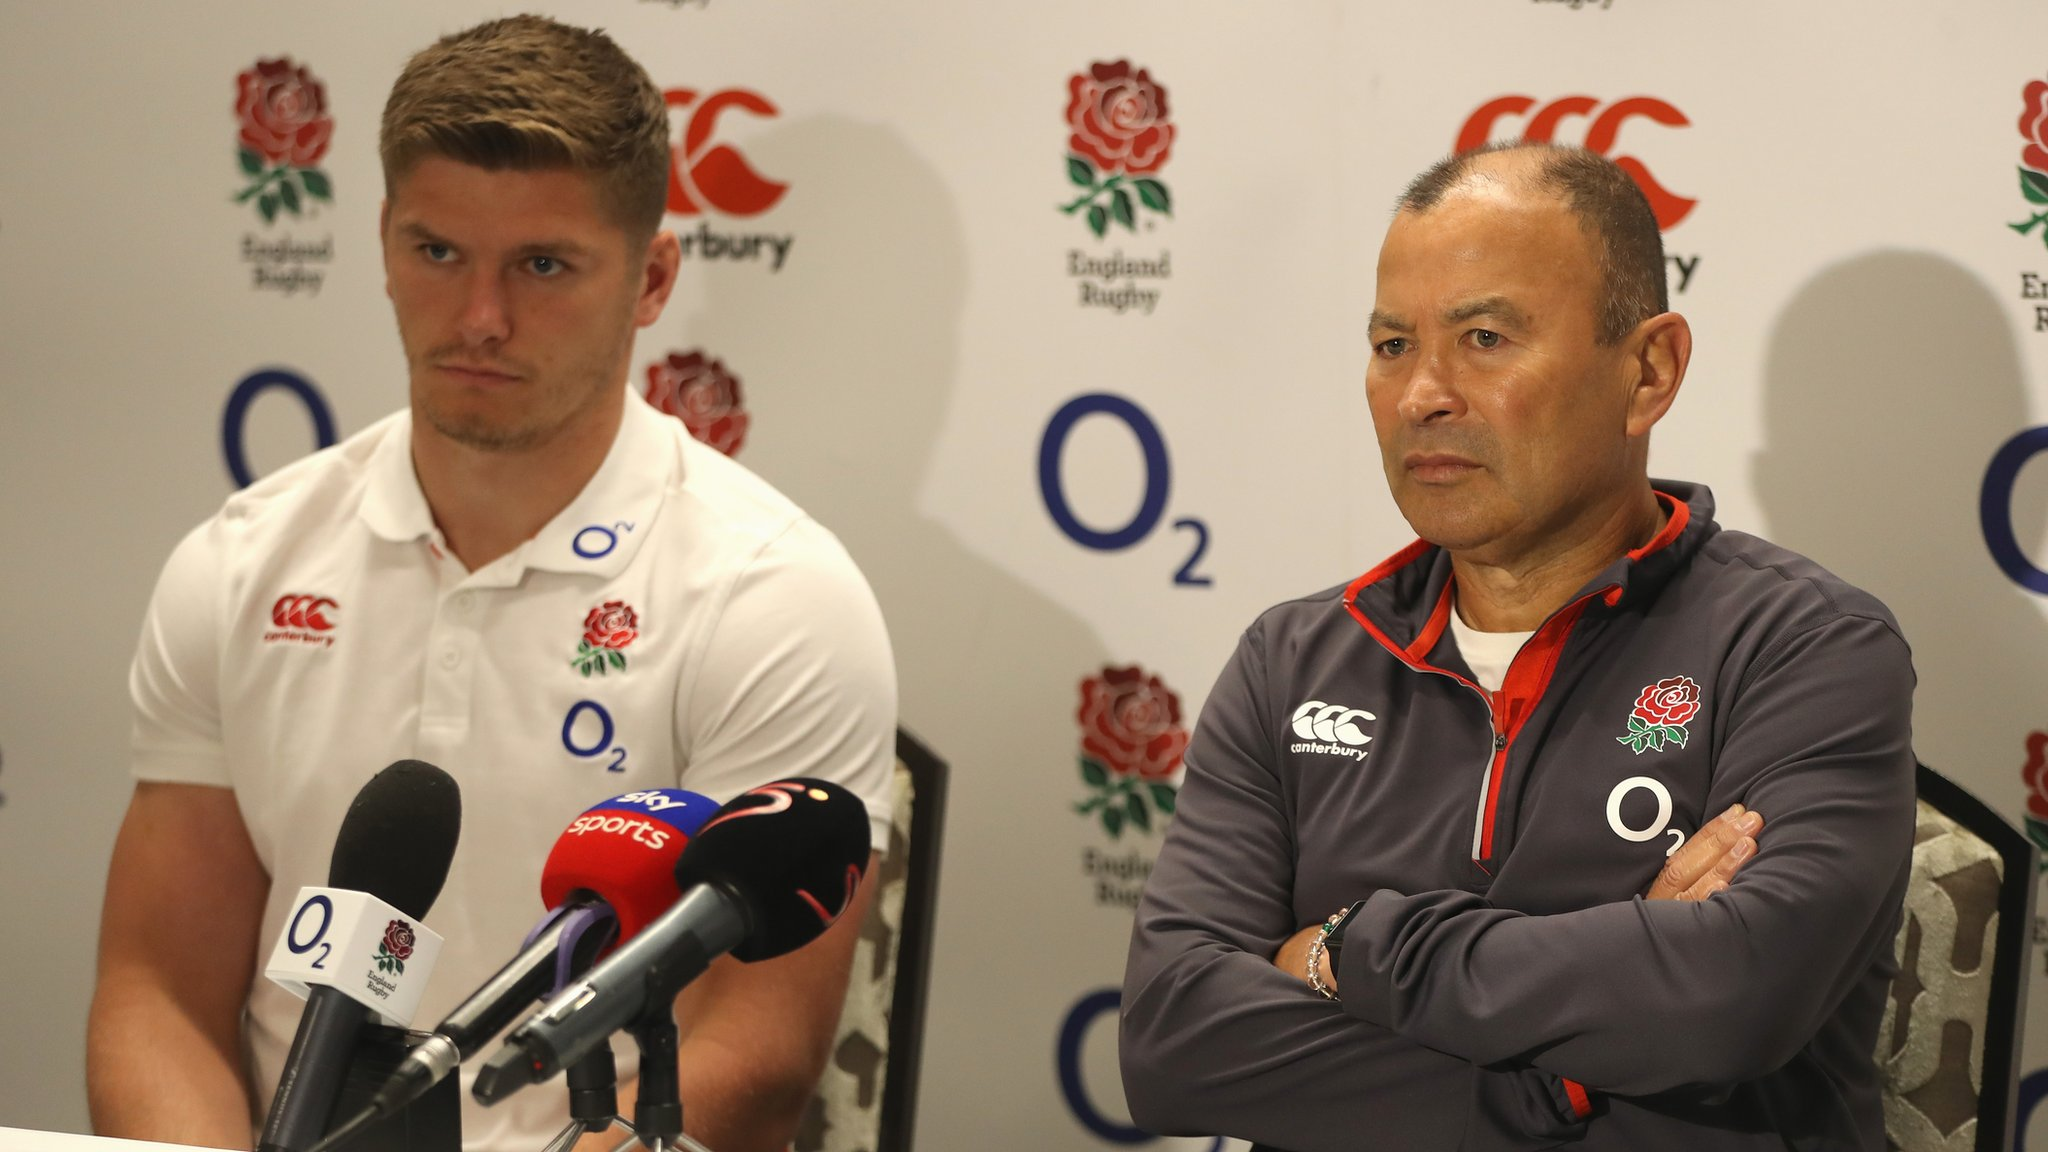 South Africa v England: Everyone knows we are struggling, admits Eddie Jones